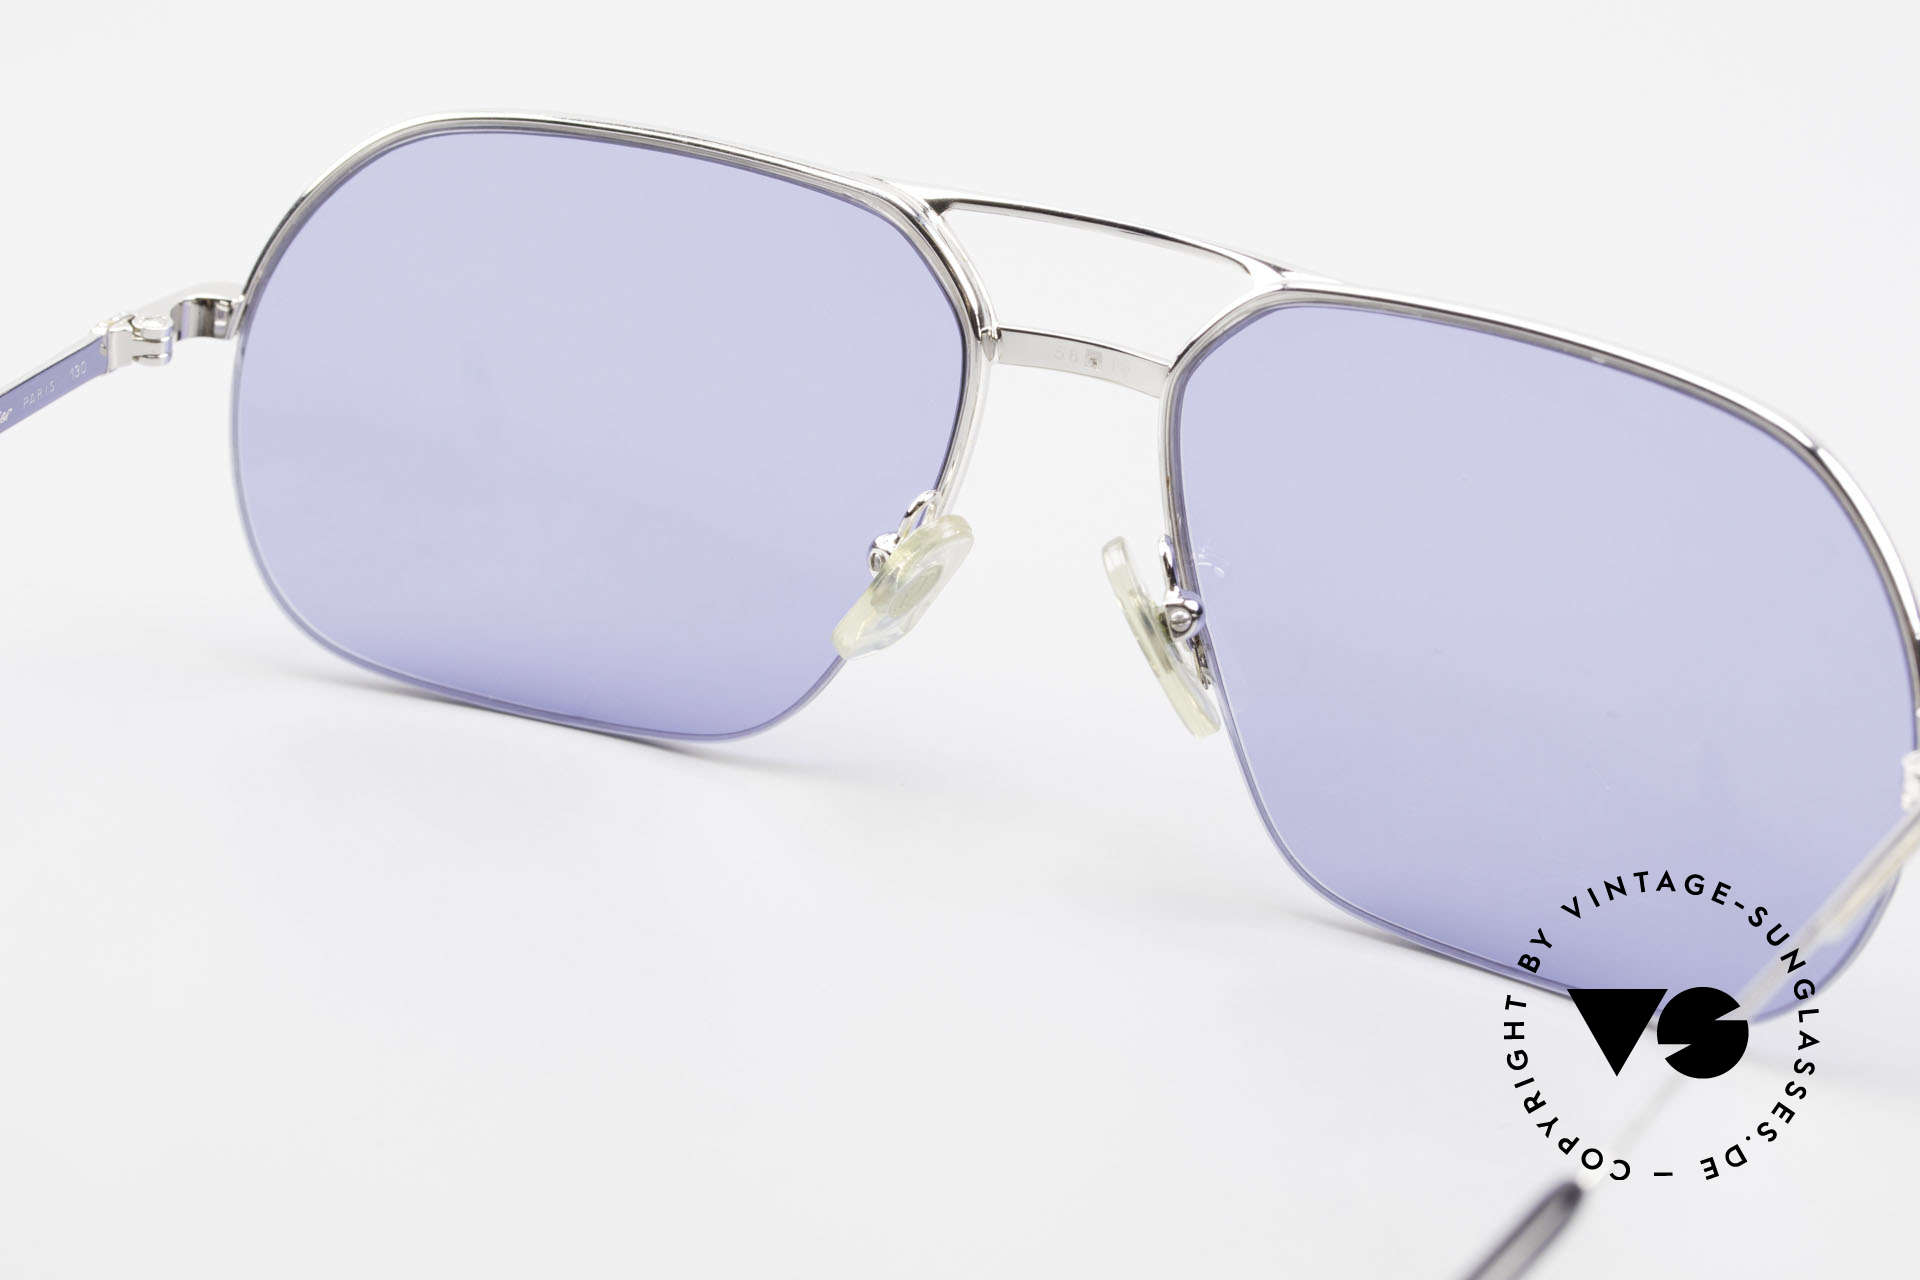 Cartier Orsay Luxury Vintage Sunglasses, with new CR39 UV400 sun lenses in blue (100% UV), Made for Men